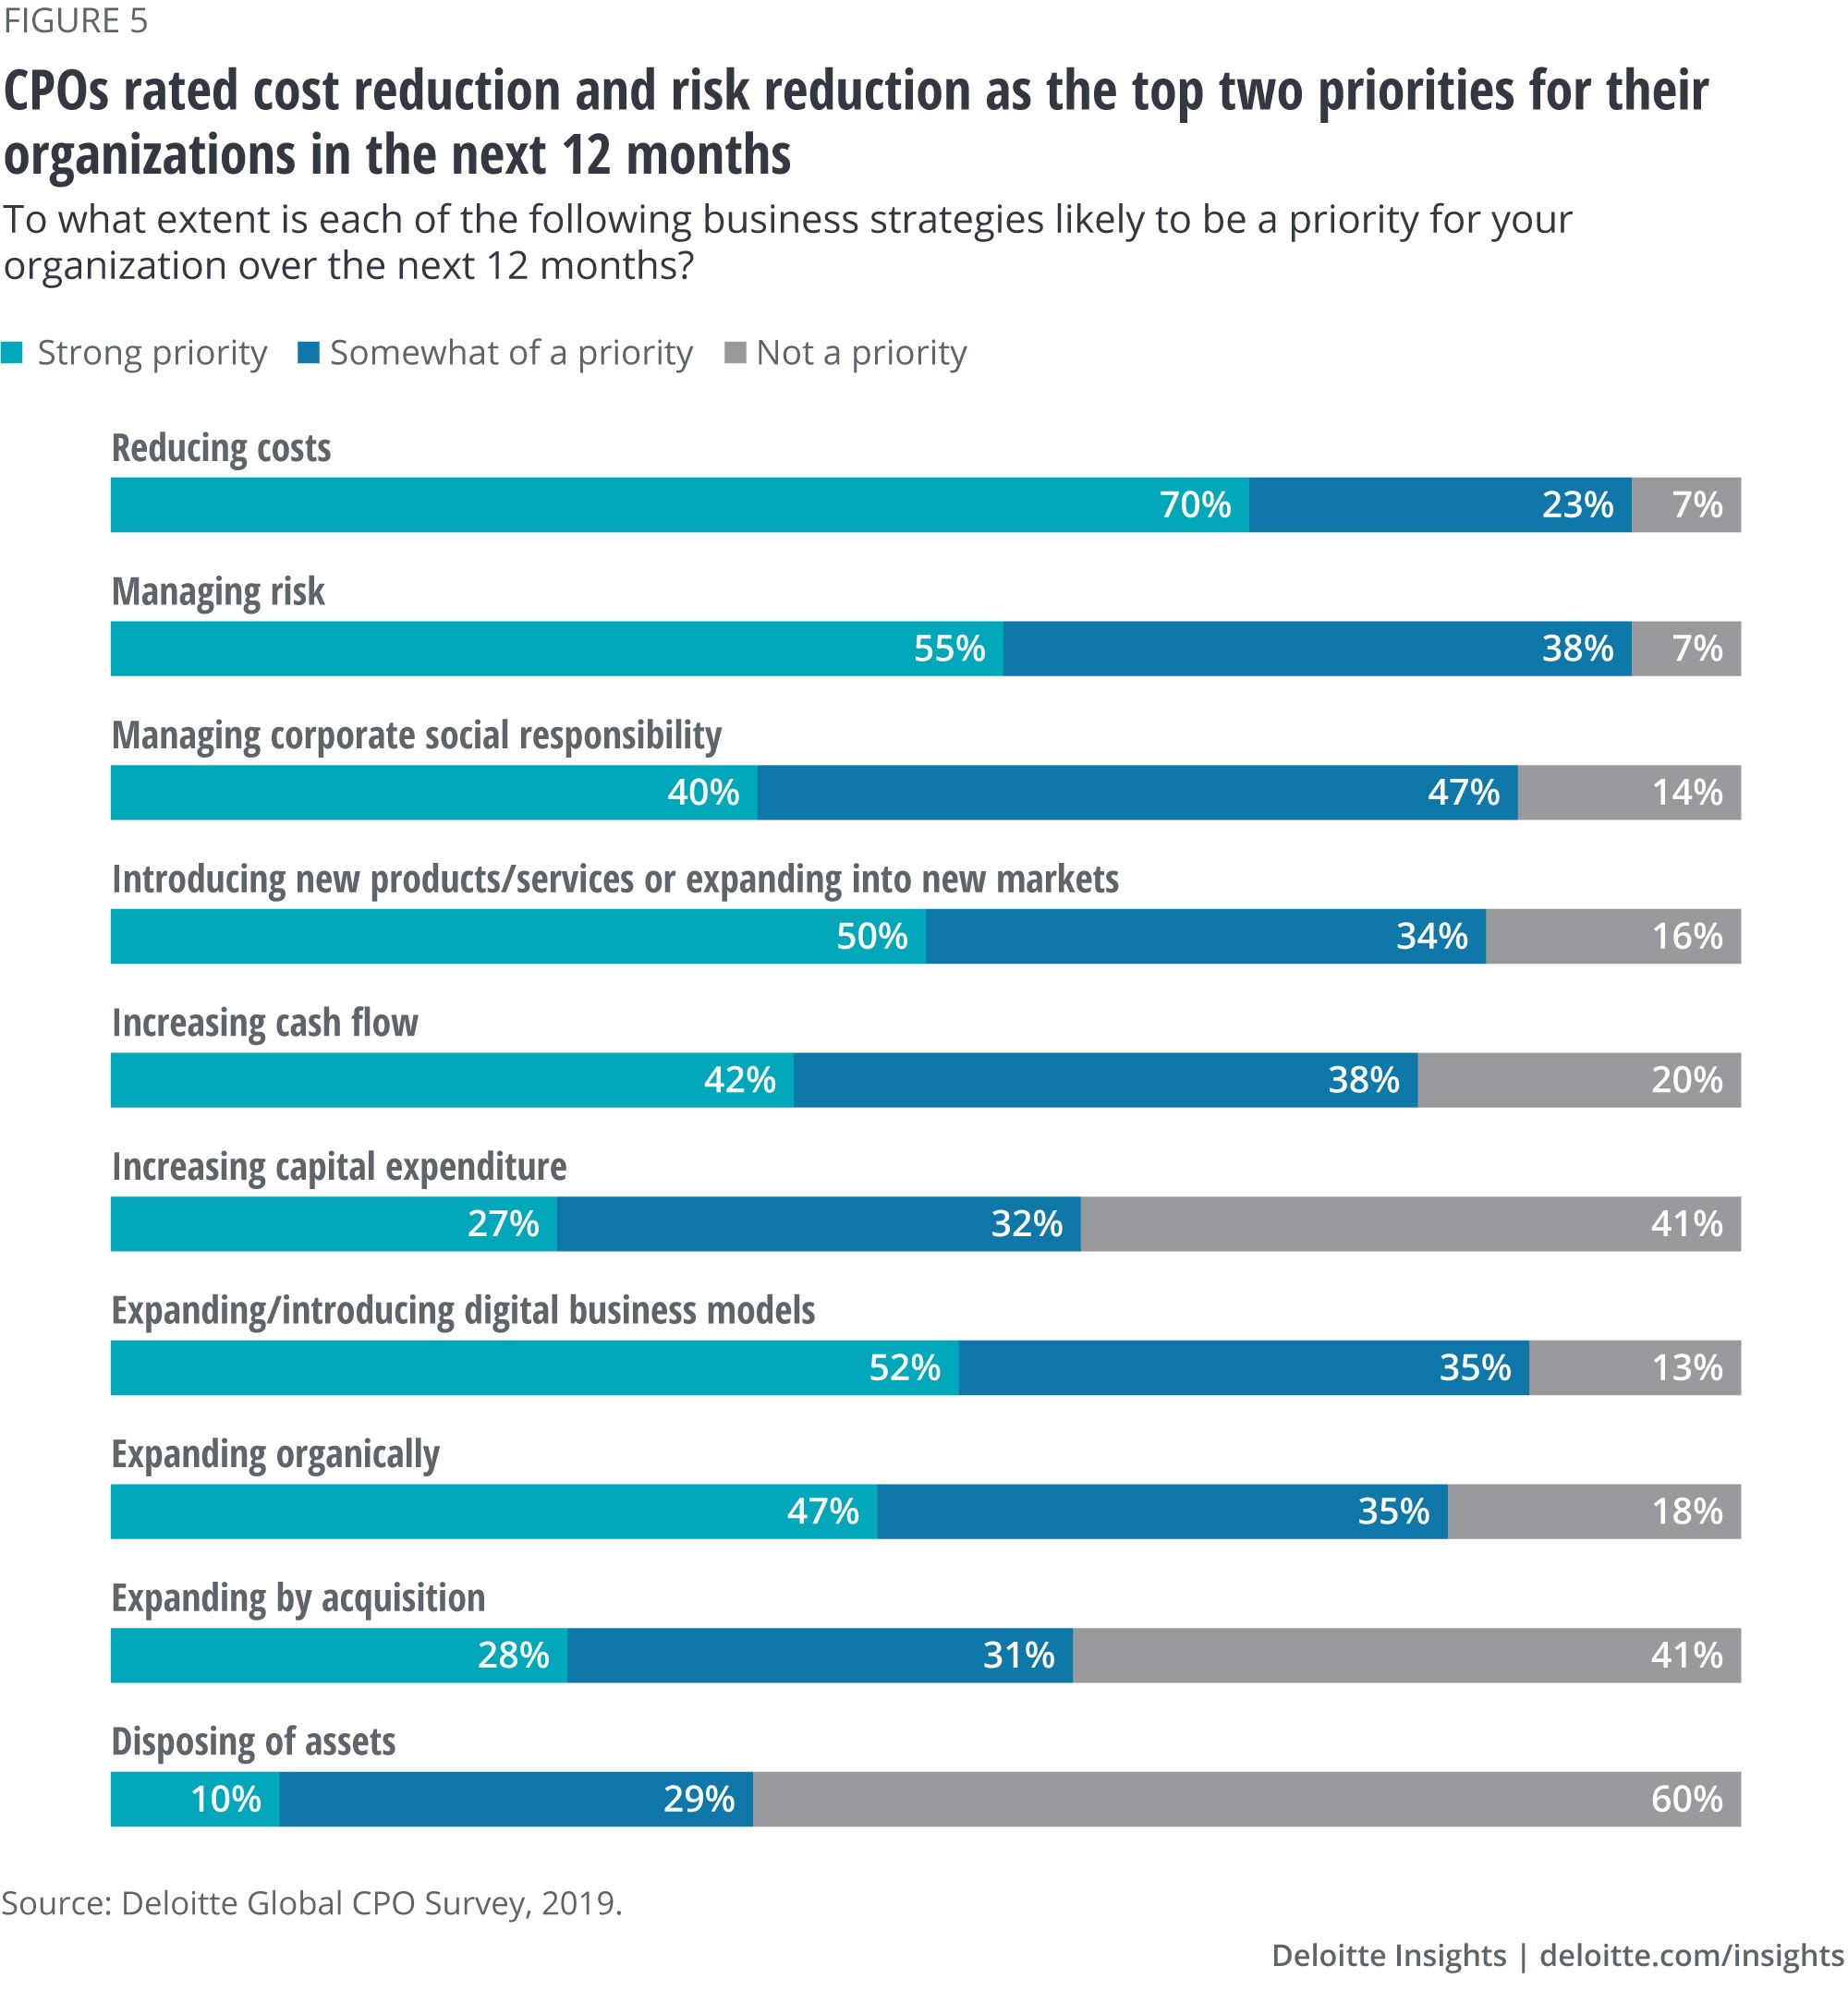 CPOs rated cost reduction and risk reduction as the top two priorities for their organizations in the next 12 months